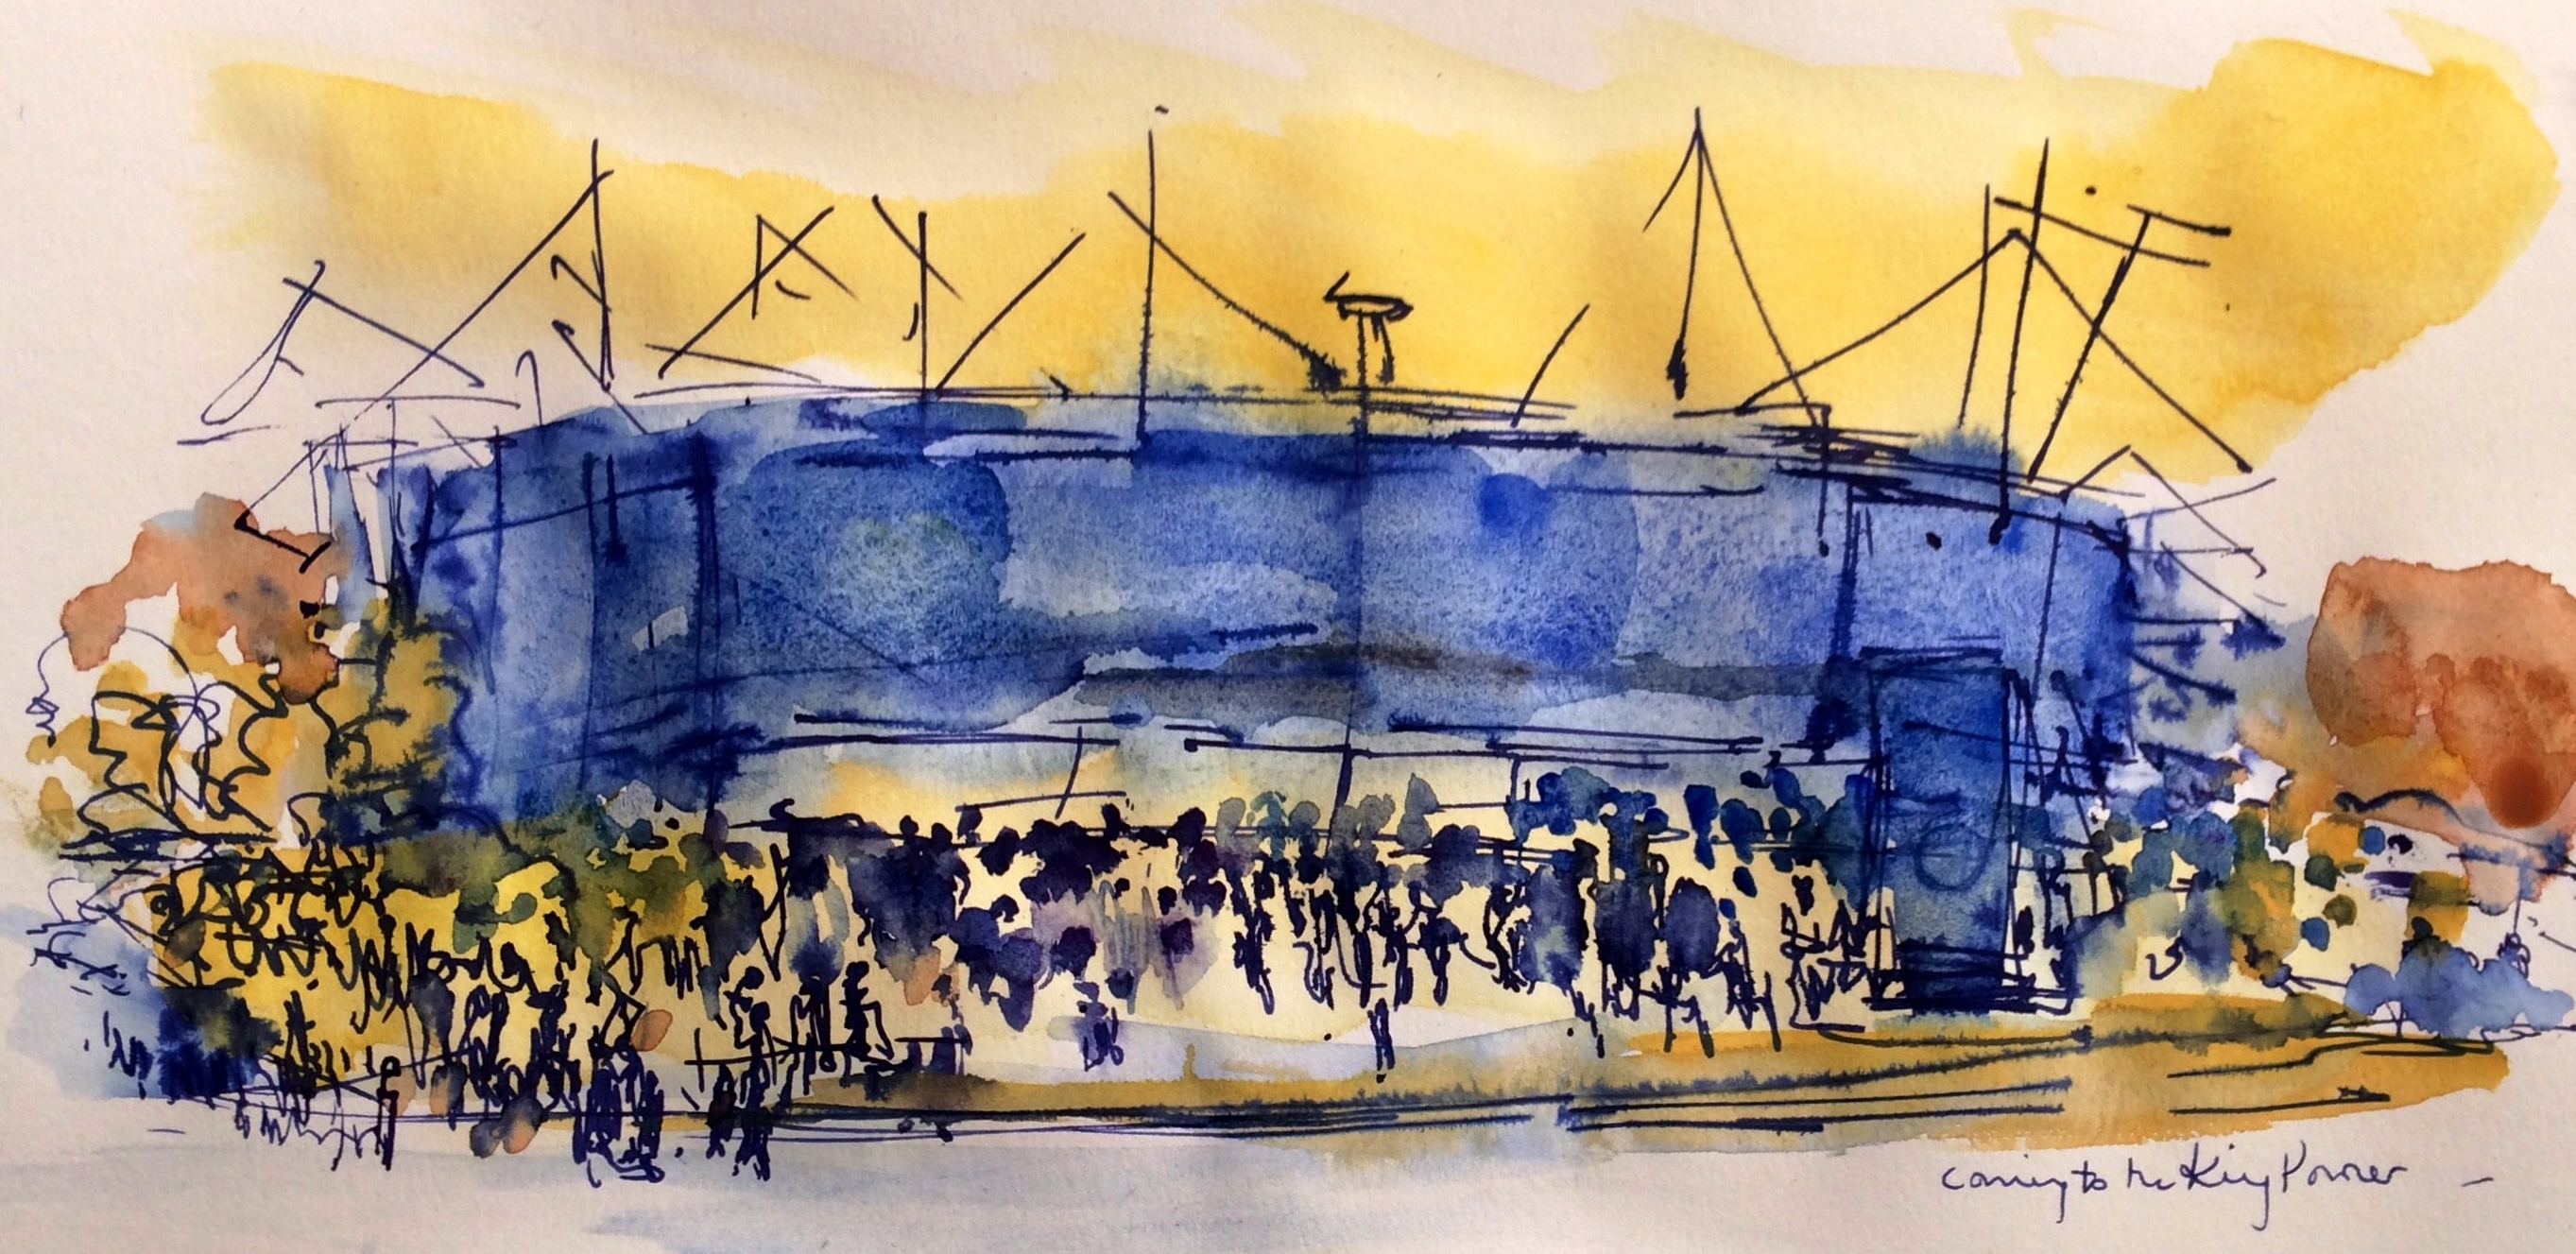 King Power Stadium, watercolour